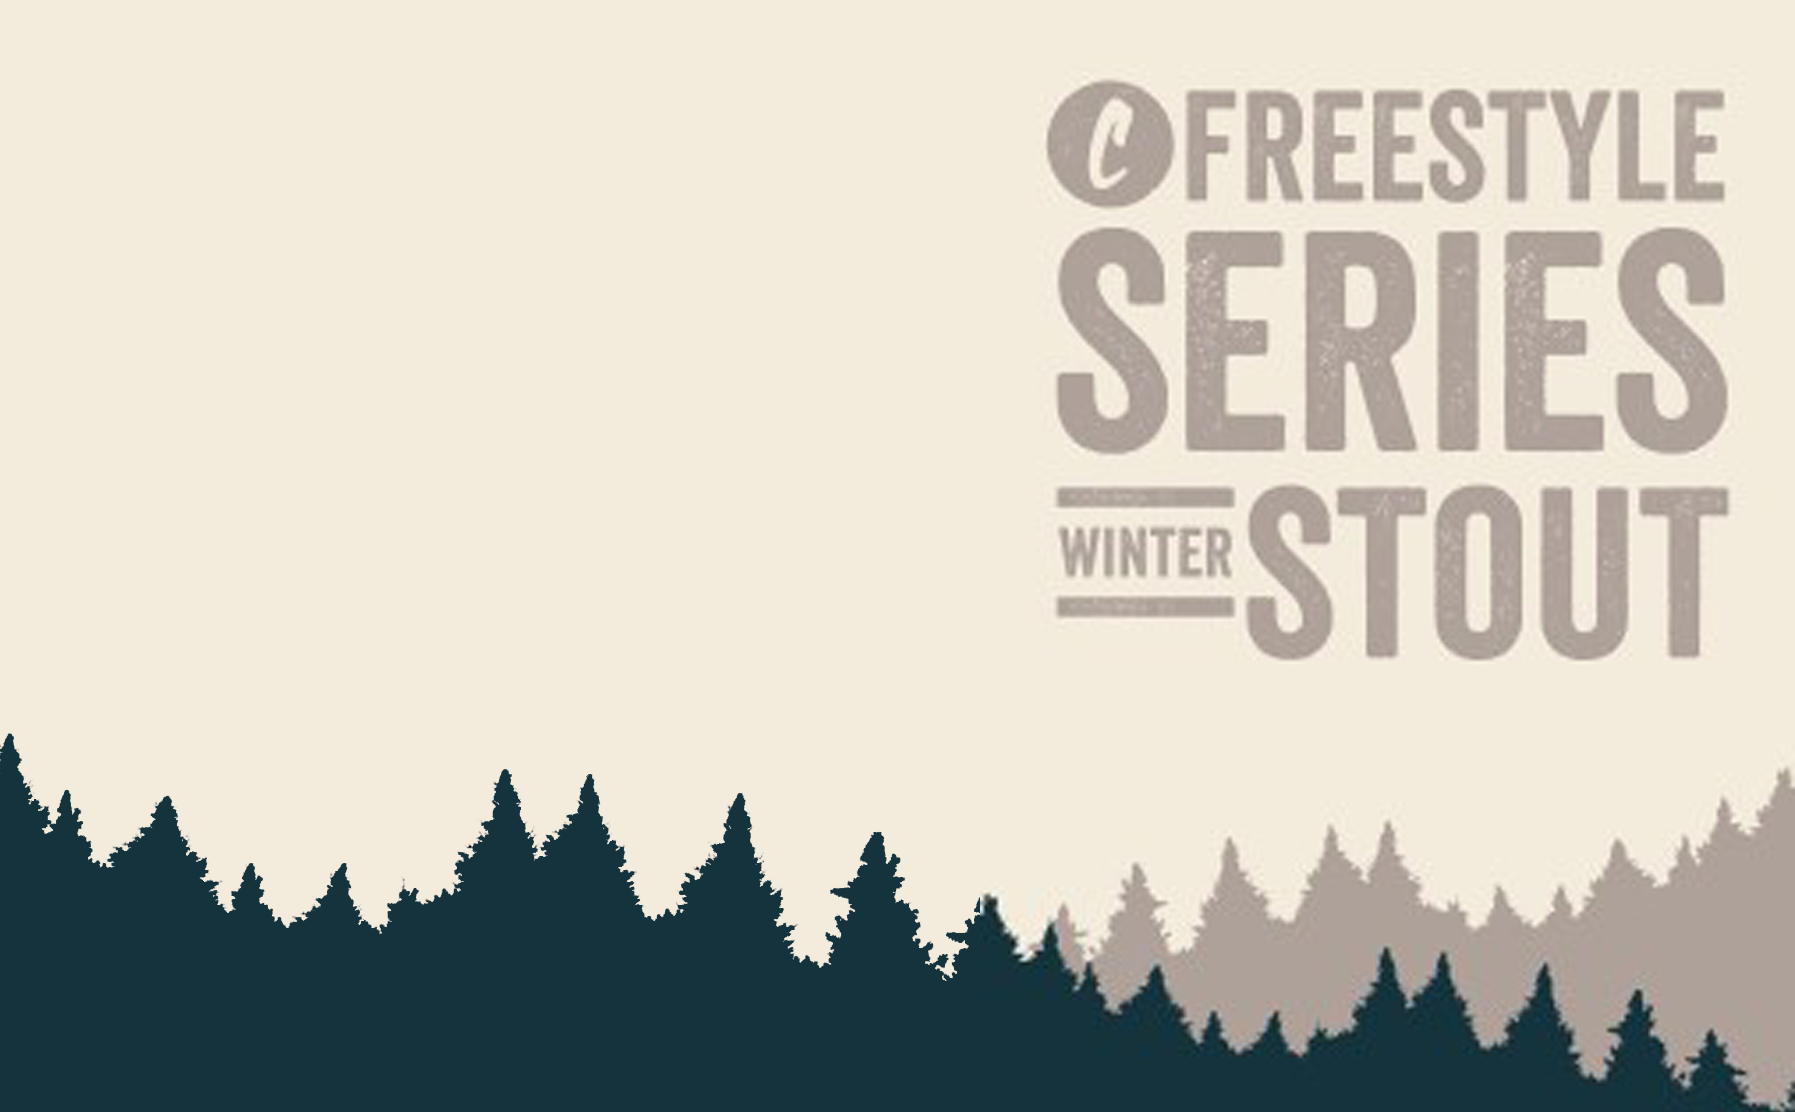 Winter Stout Website Image.png